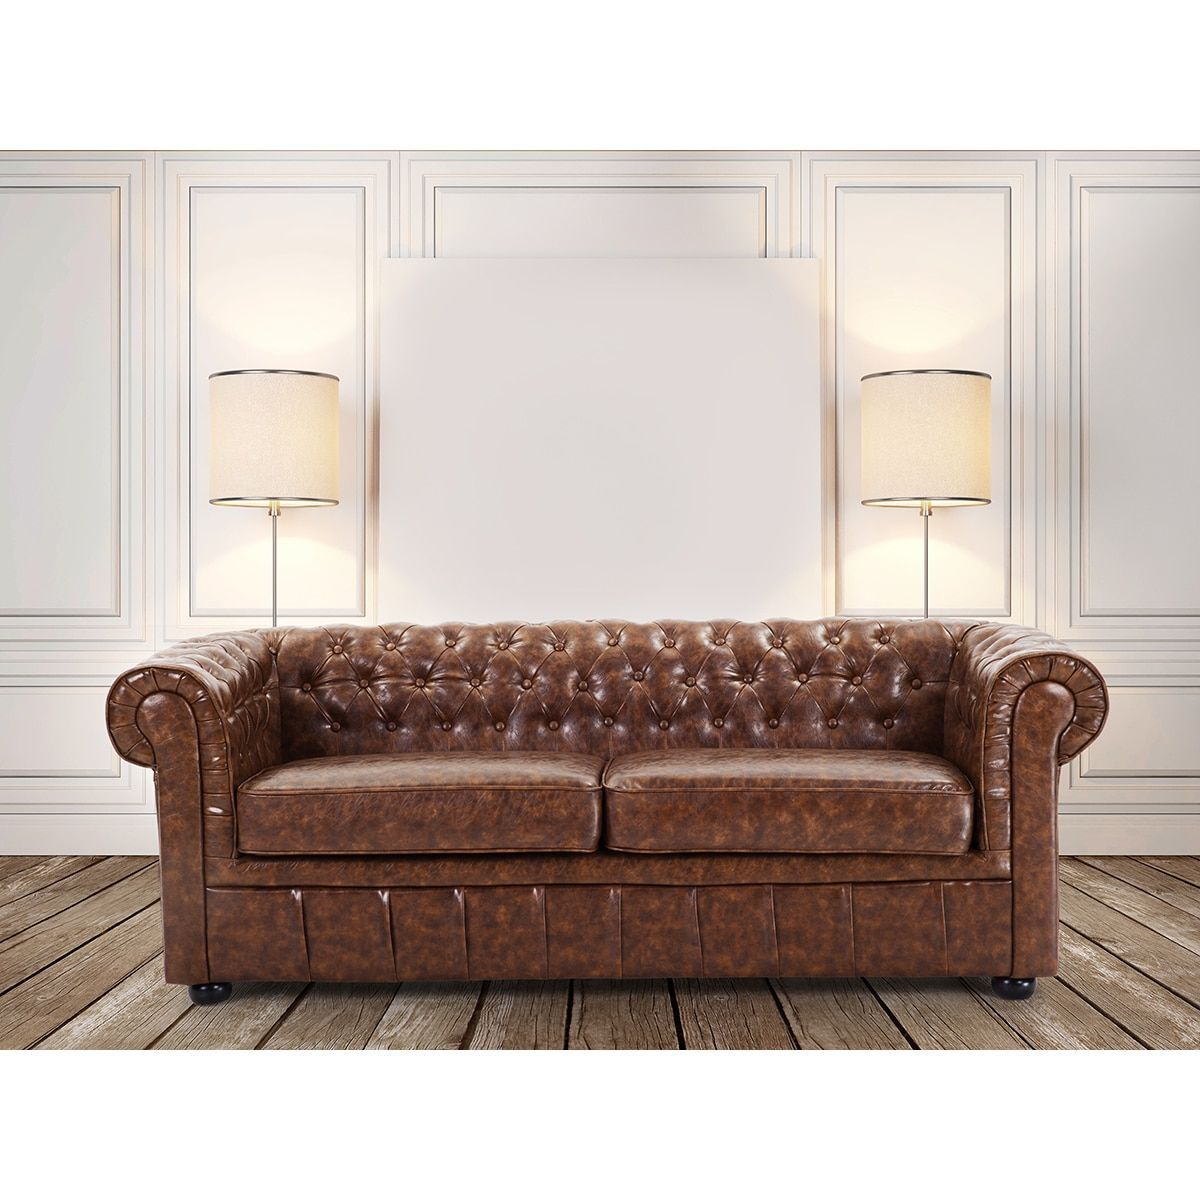 Great Velago Quilted Leather Sofa  Chesterfield By Beliani